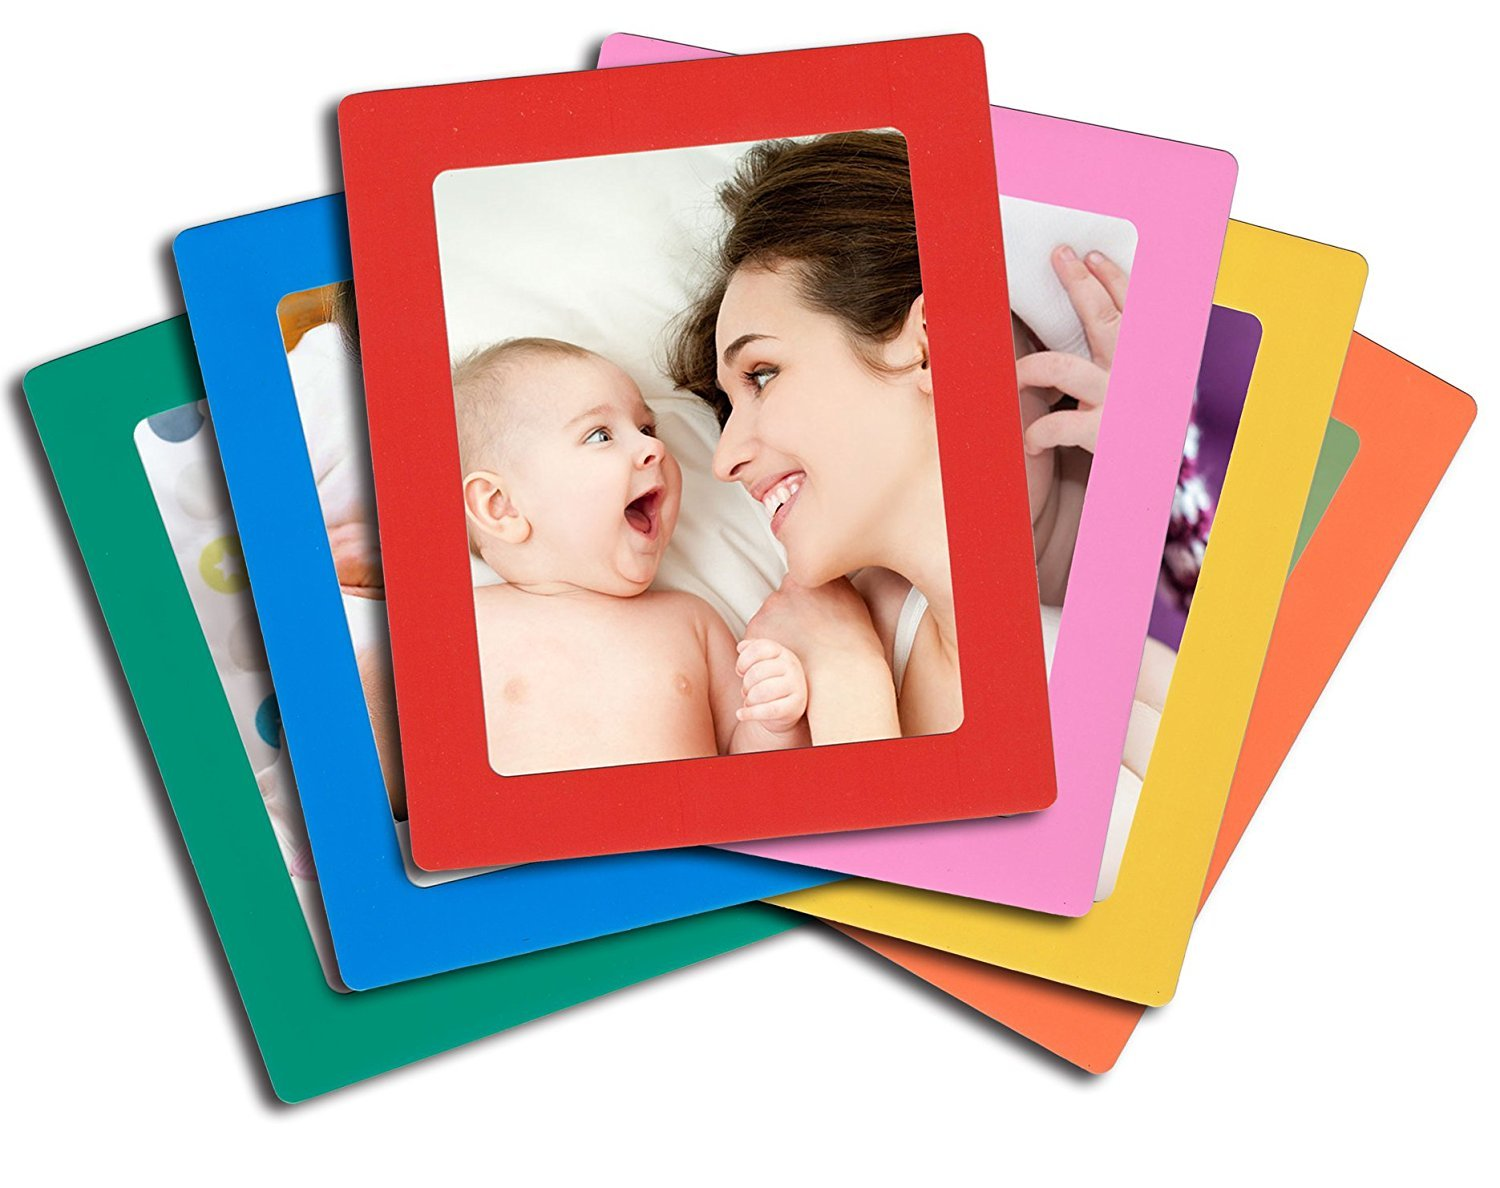 Lubber 6-Pack Magnetic Picture Frames for Refrigerator 5x7 inch Colorful Photo Note Holder by Lubber